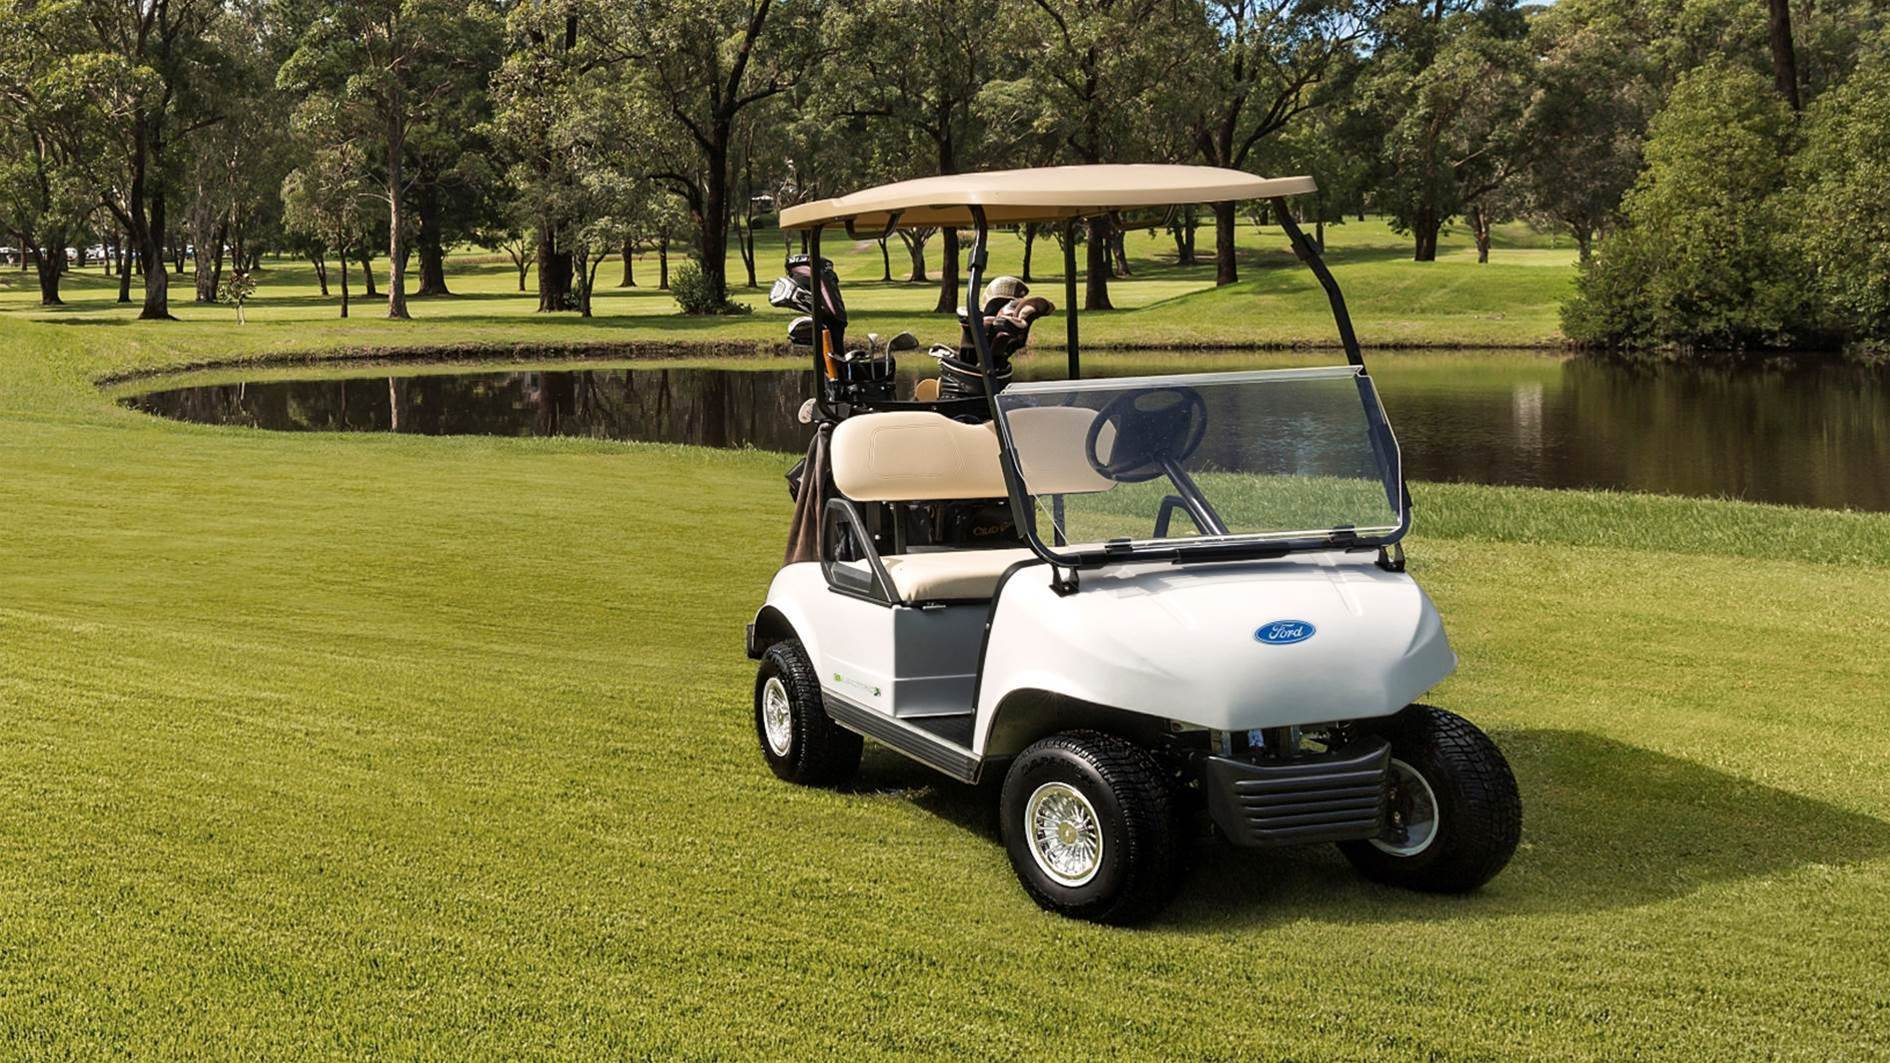 Ford golf carts go further